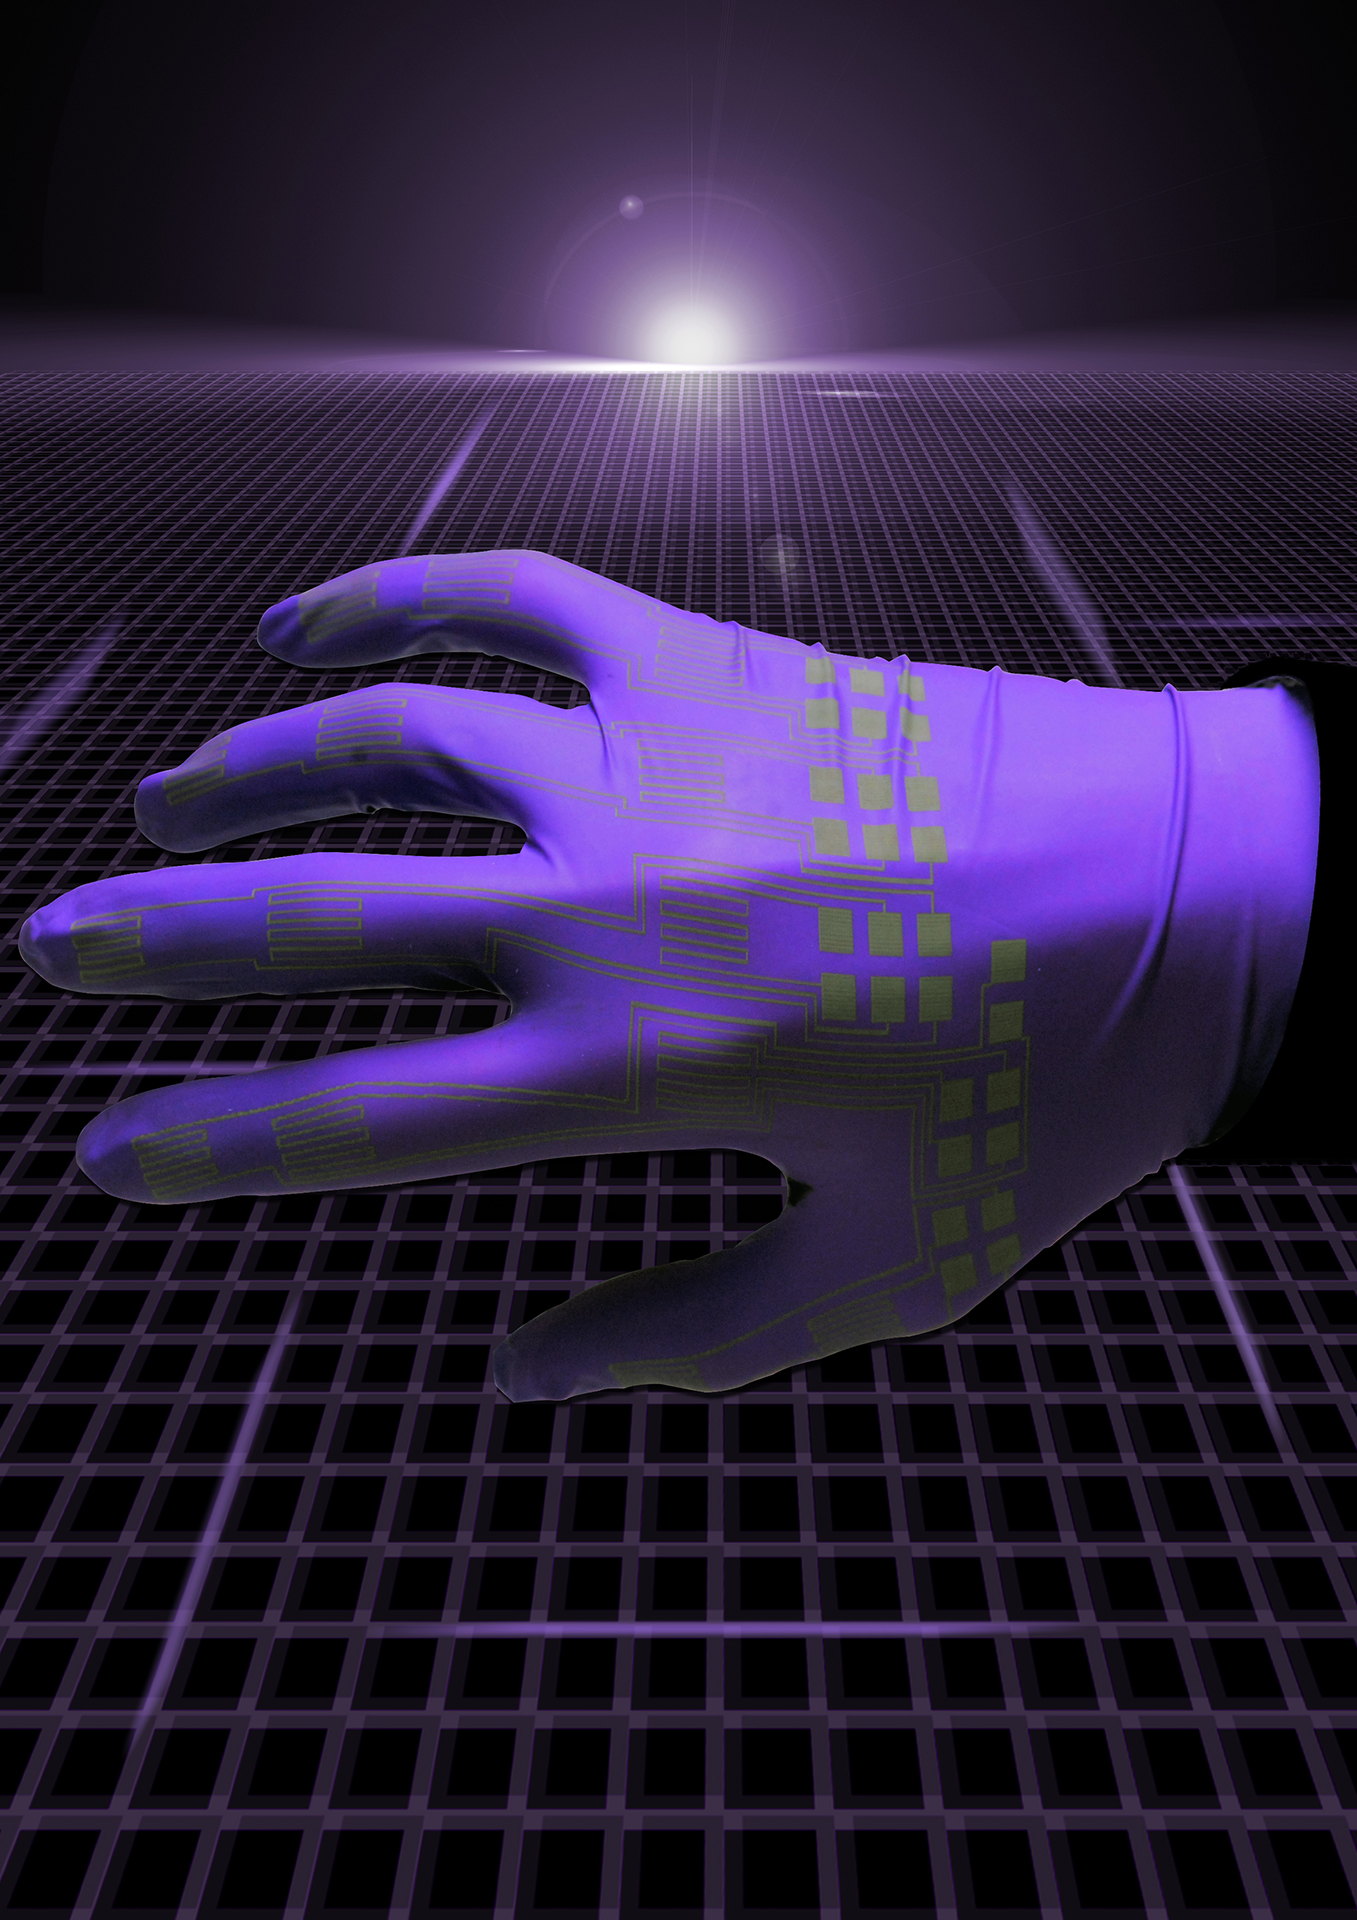 Inkjet-printed liquid metal could bring wearable tech, soft robotics